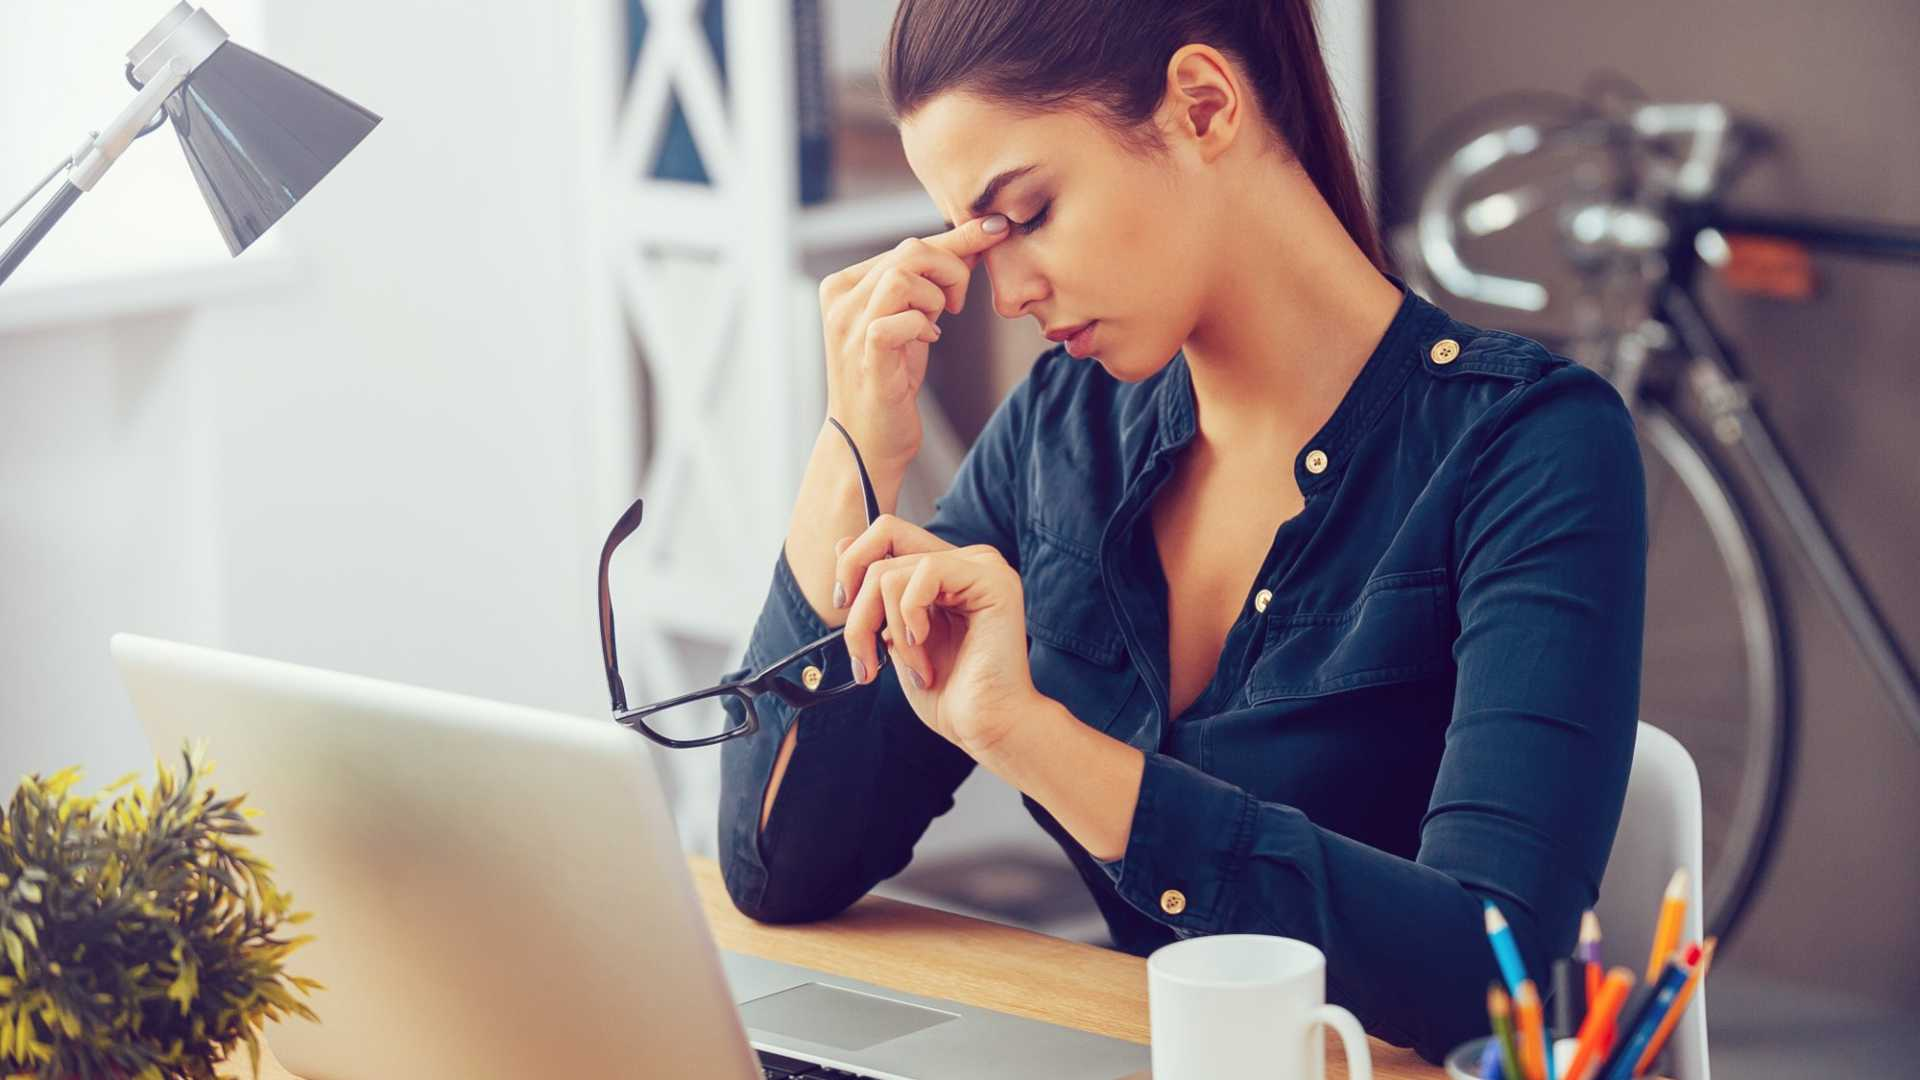 4 Unhealthy Habits That Are Draining Your Performance at Work